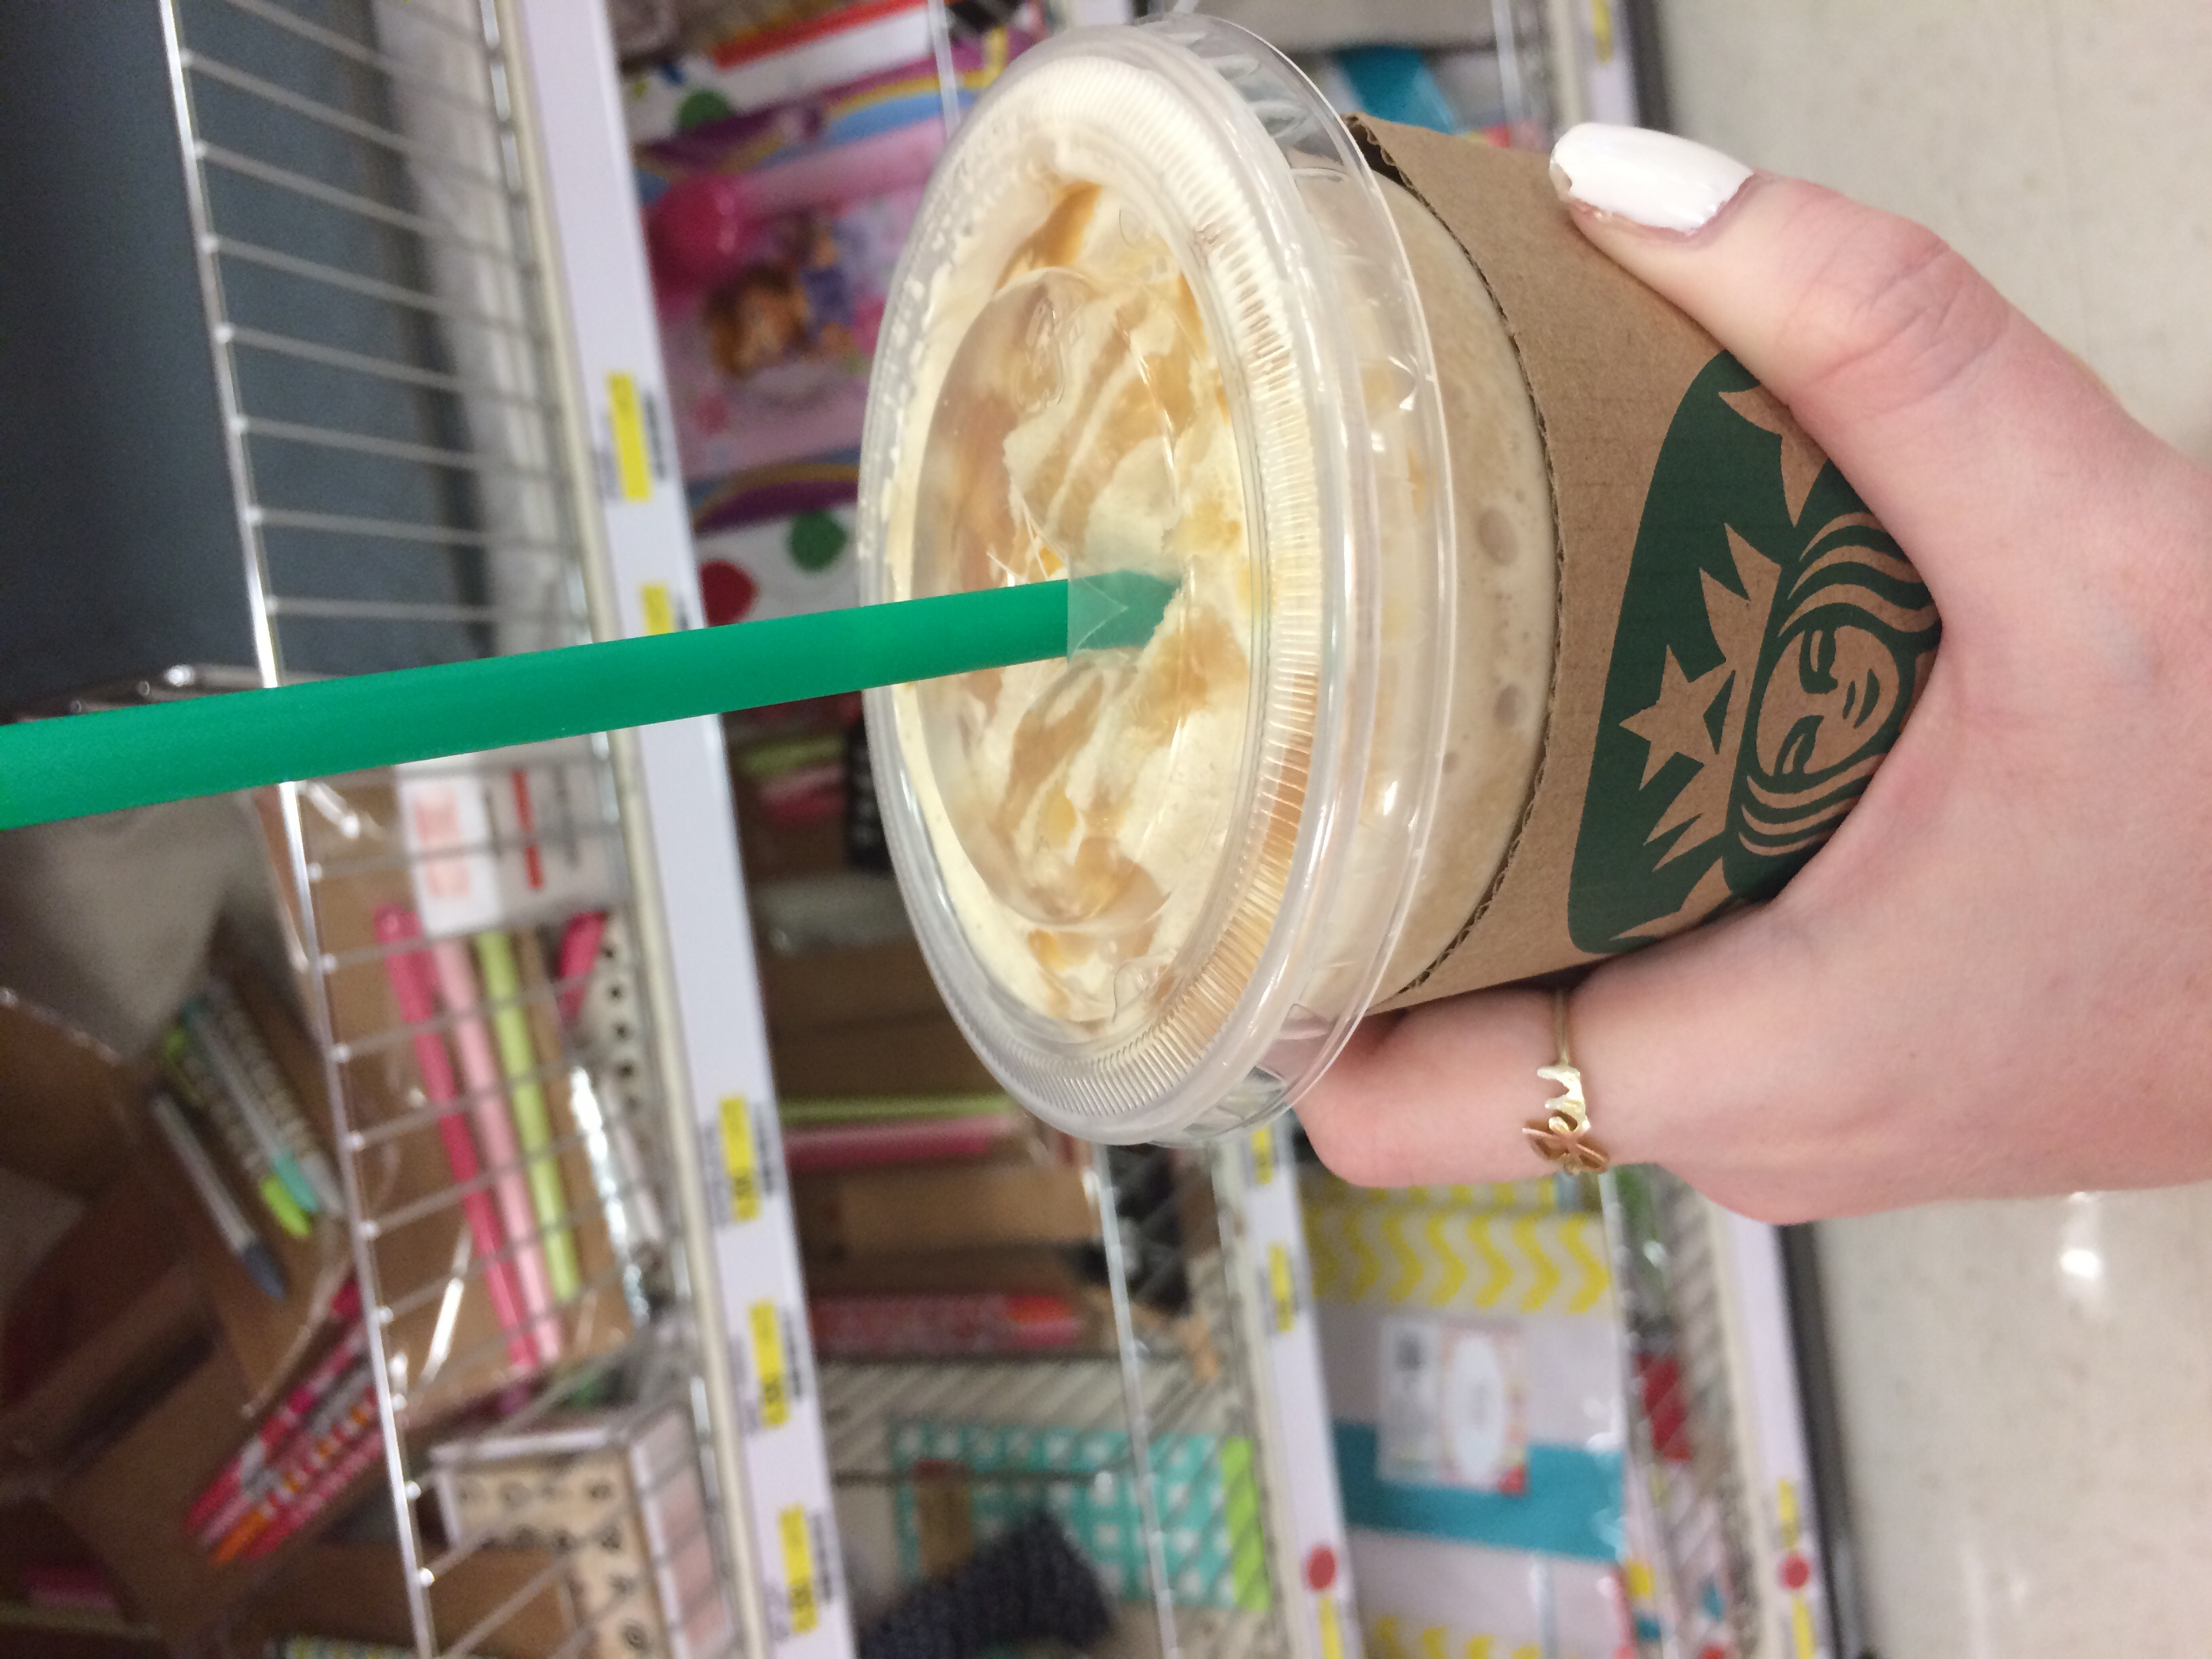 Wandering aimlessly with some Starbs